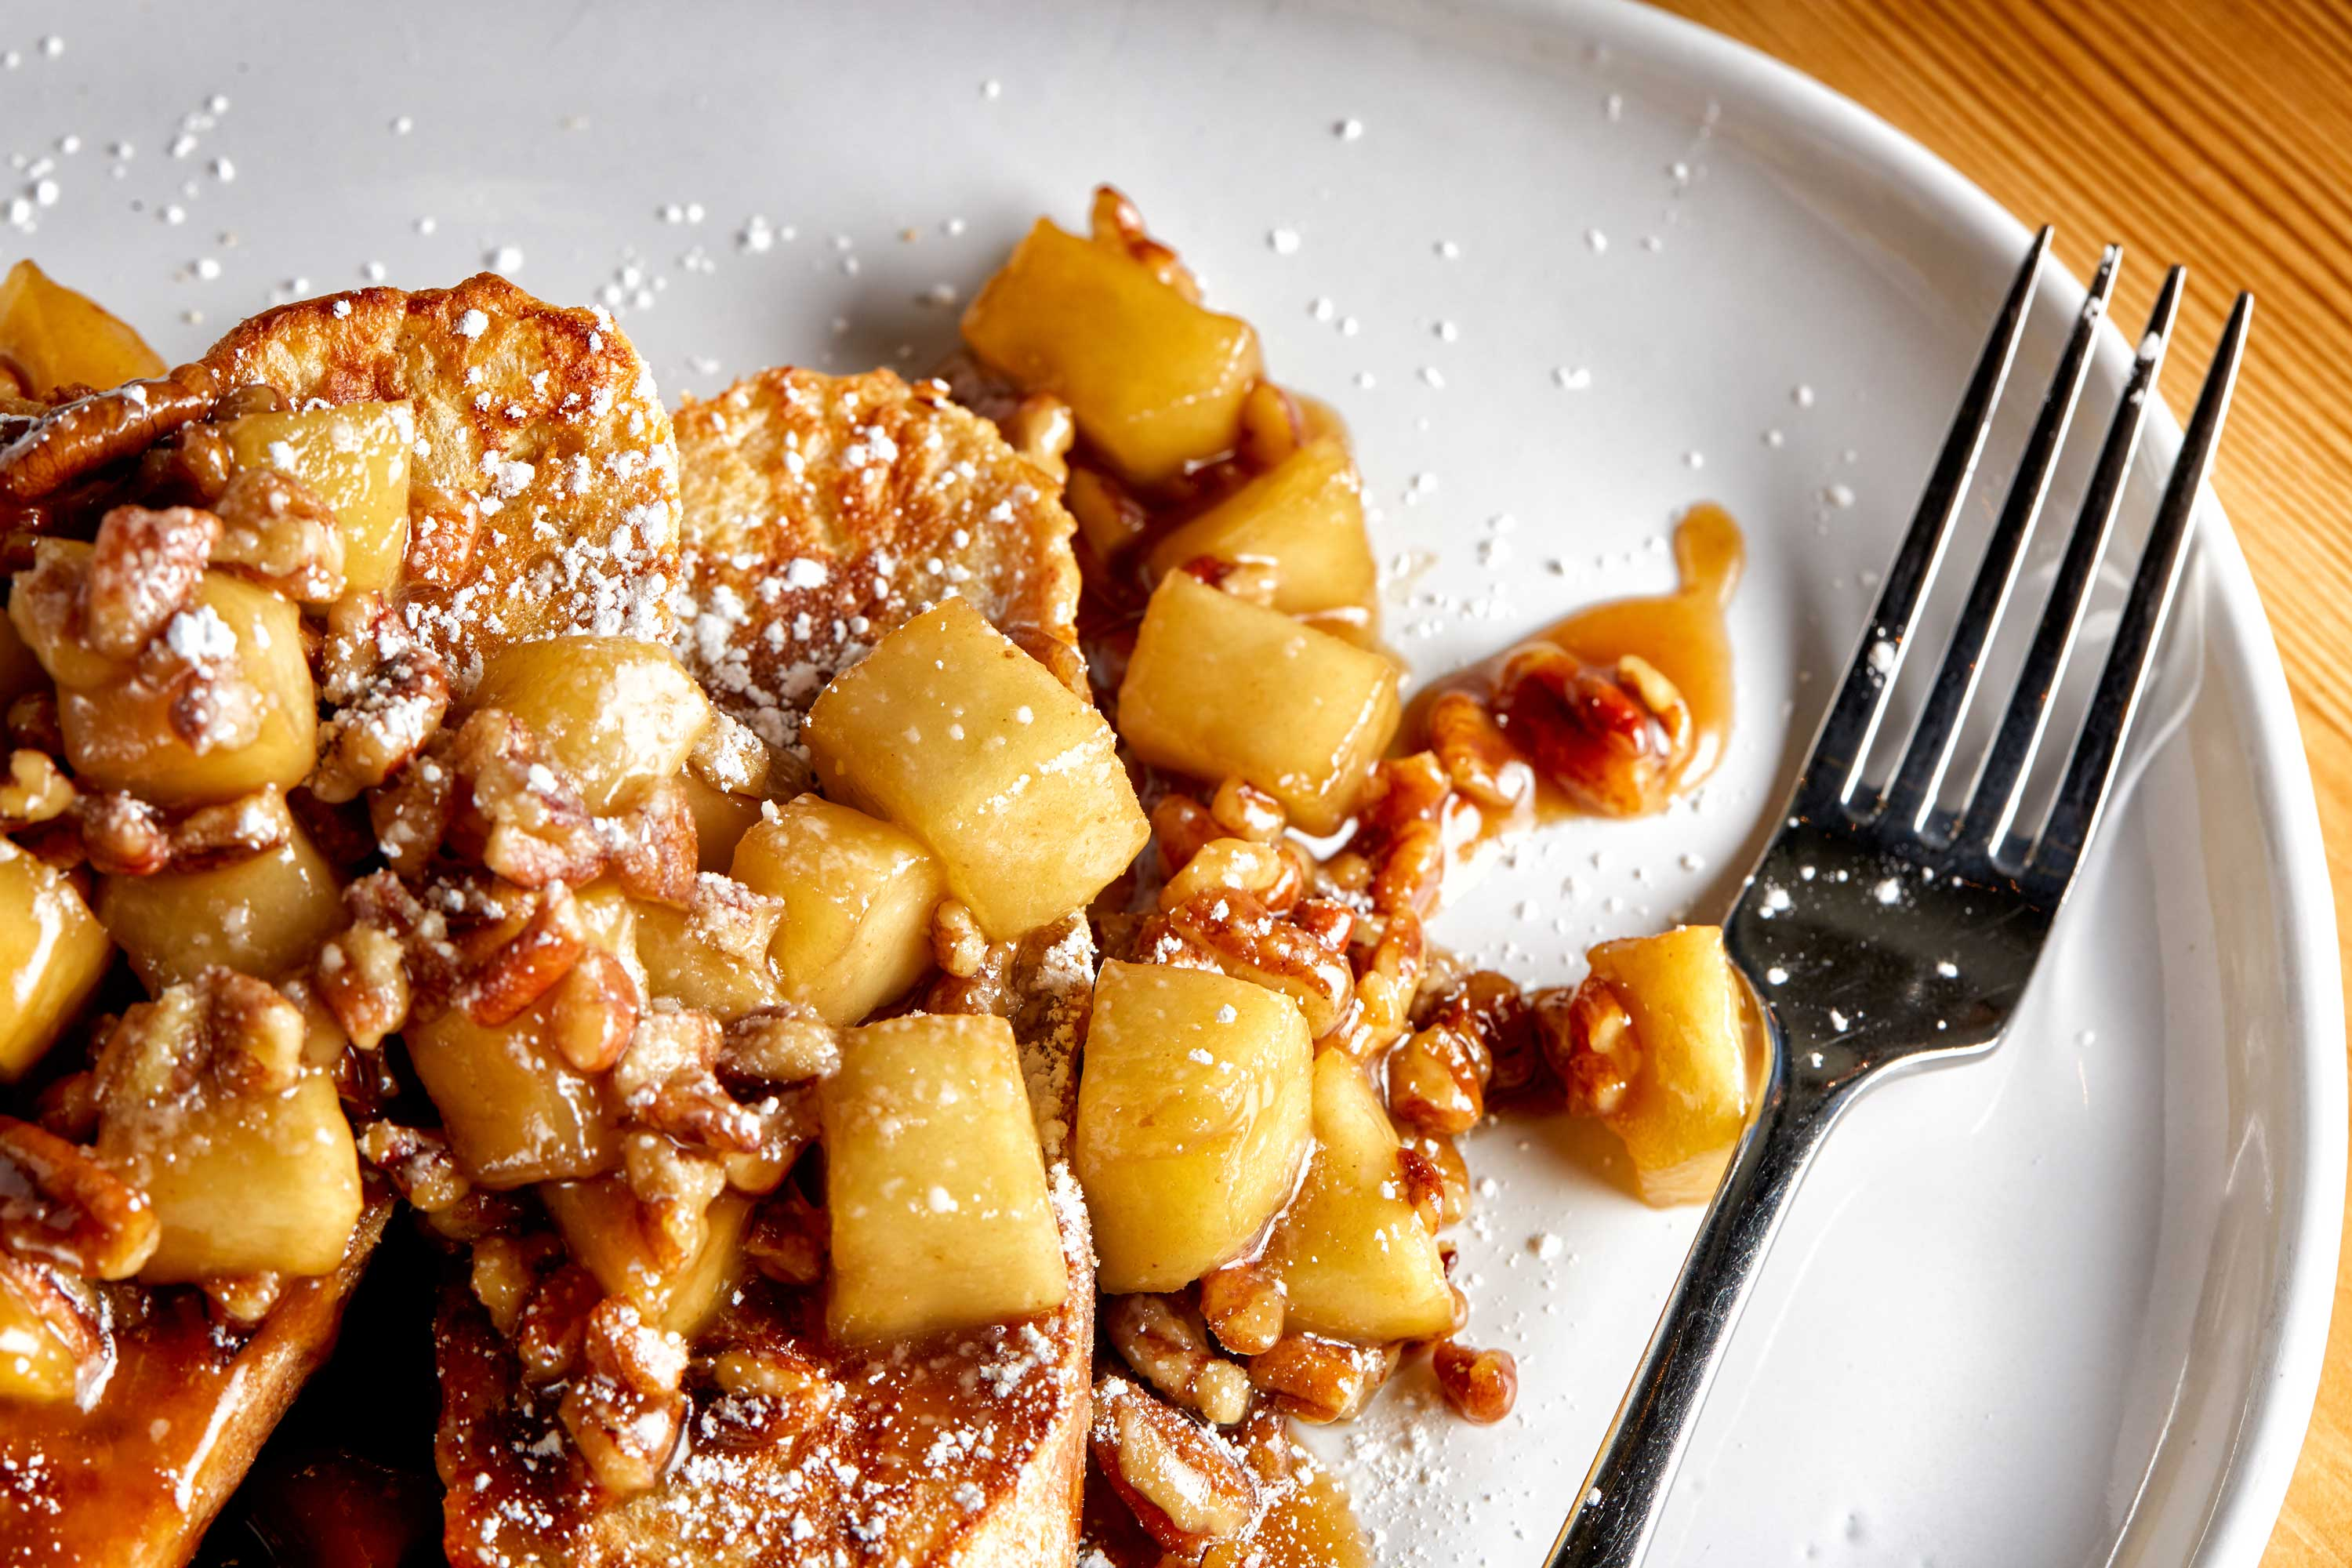 LCHA-EDK-brunch-french-toast